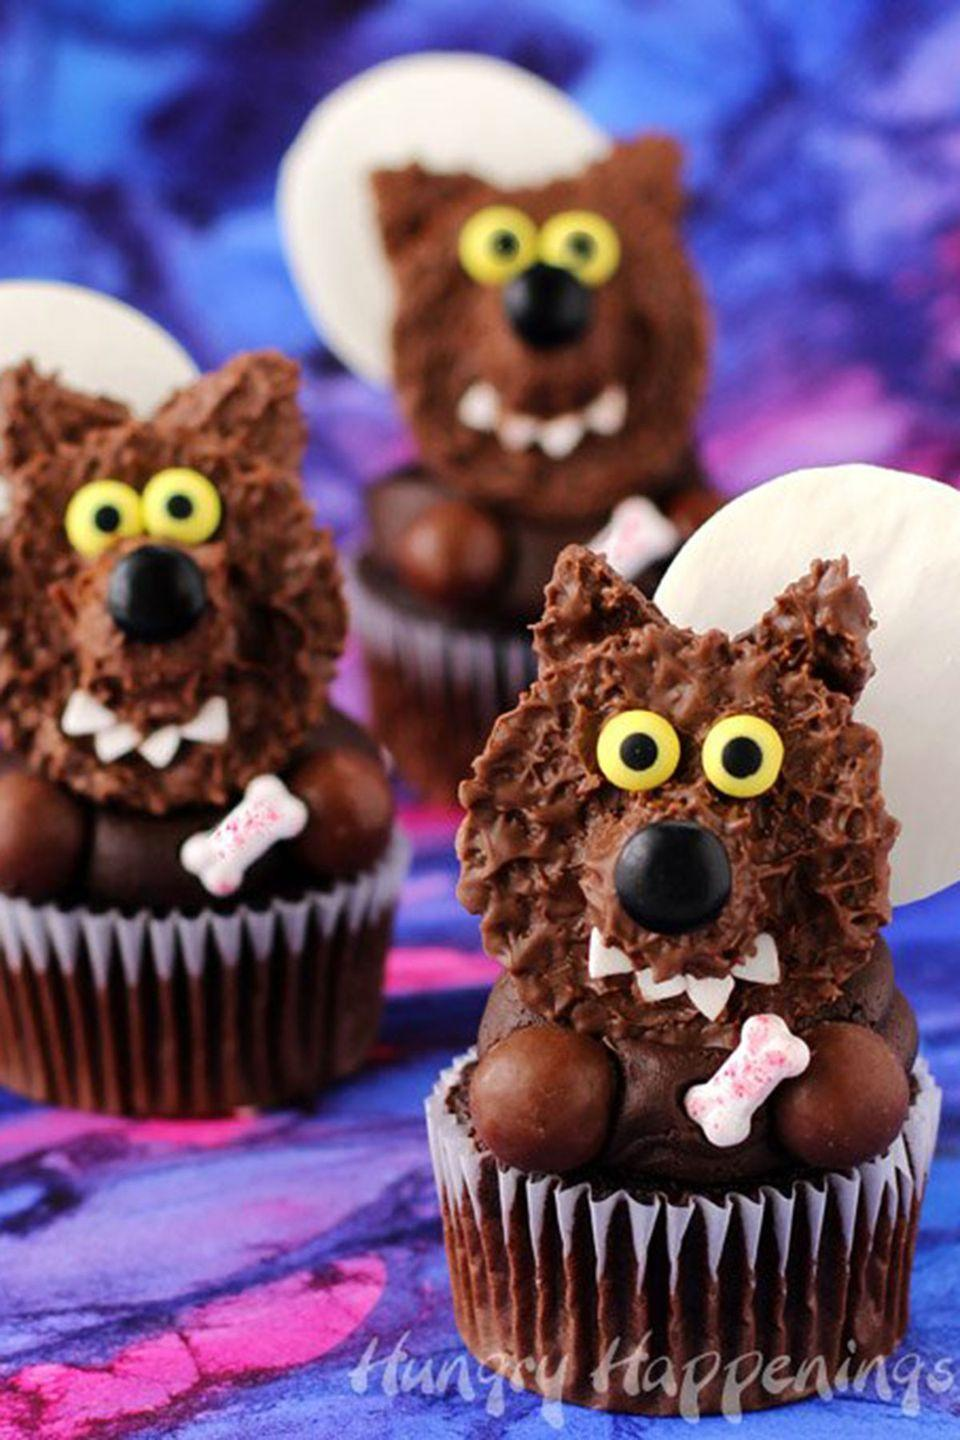 """<p>These adorably delicious treats will have your party guests howling for more!</p><p><strong>Get the recipe at <a href=""""http://hungryhappenings.com/2016/09/reeses-cup-werewolf-cupcakes.html/"""" rel=""""nofollow noopener"""" target=""""_blank"""" data-ylk=""""slk:Hungry Happenings"""" class=""""link rapid-noclick-resp"""">Hungry Happenings</a>. </strong></p>"""